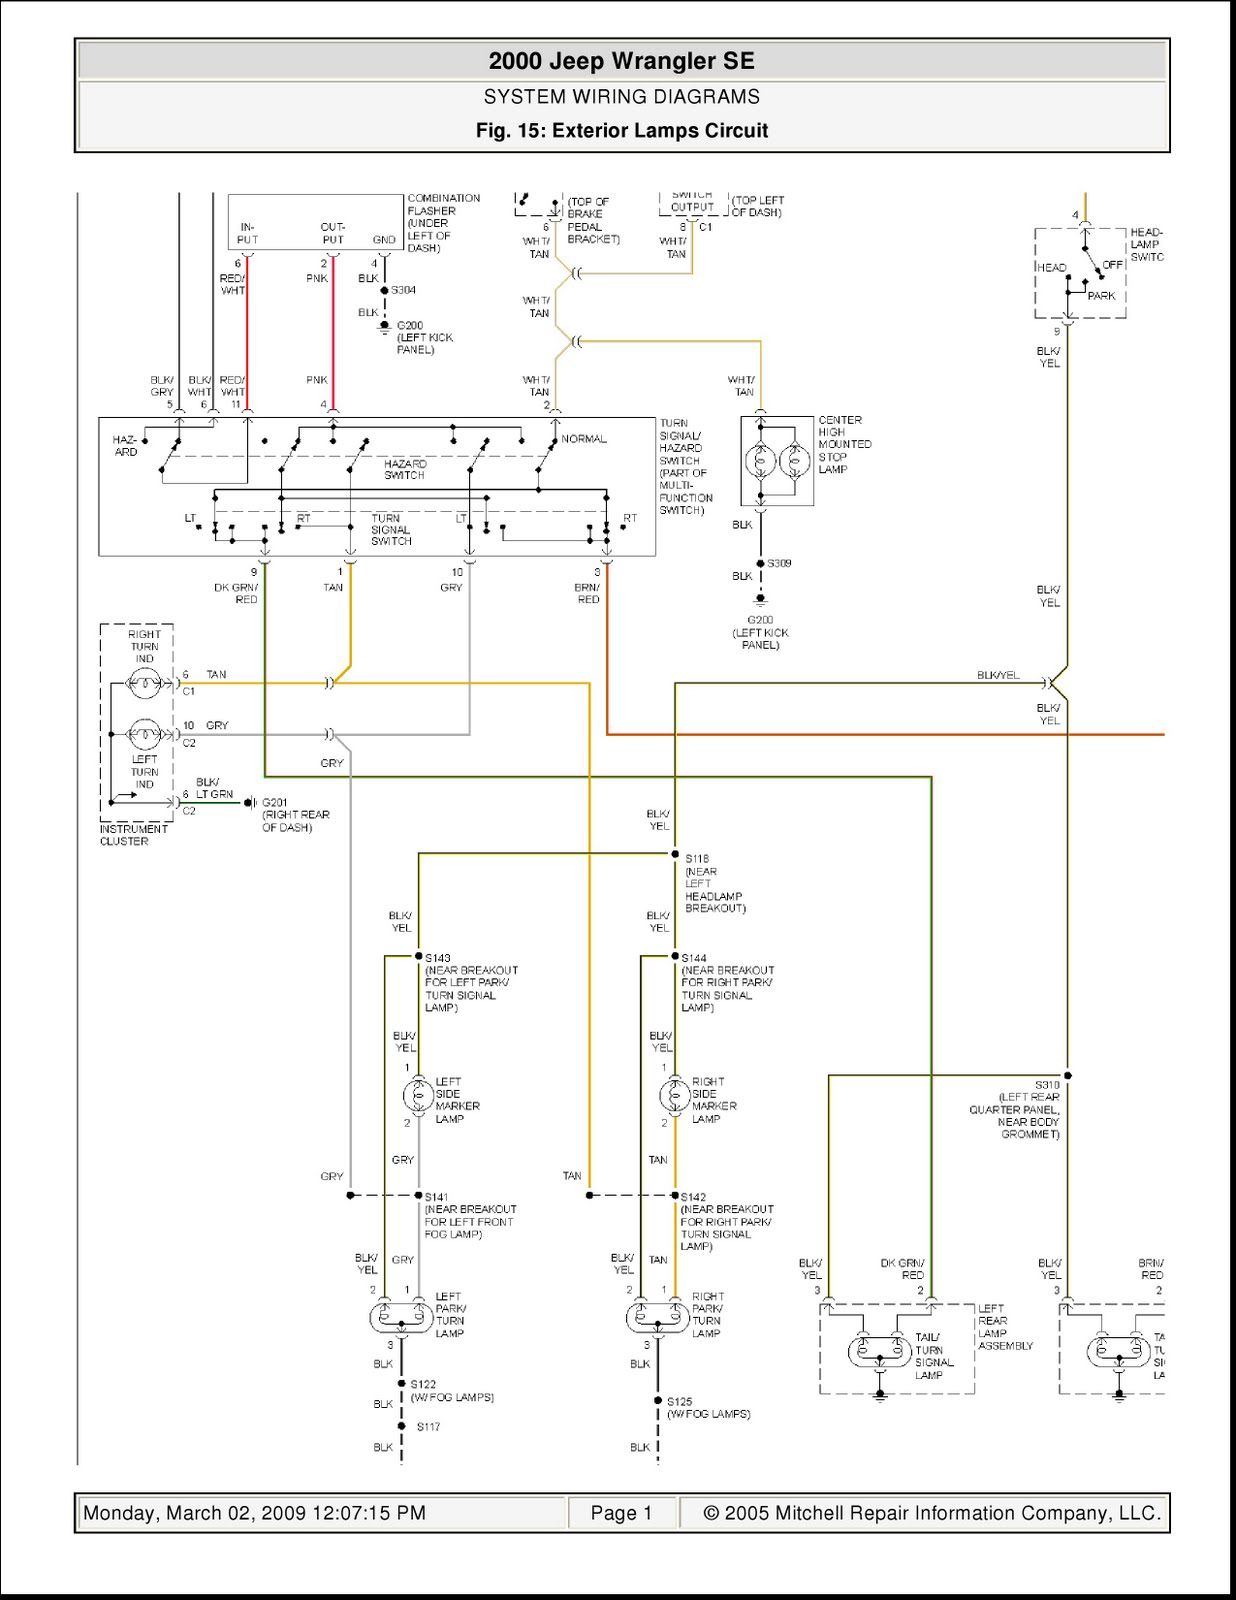 medium resolution of 2000 jeep wrangler se system wiring diagrams exterior 2004 jeep wrangler wiring 2004 jeep wrangler wiring